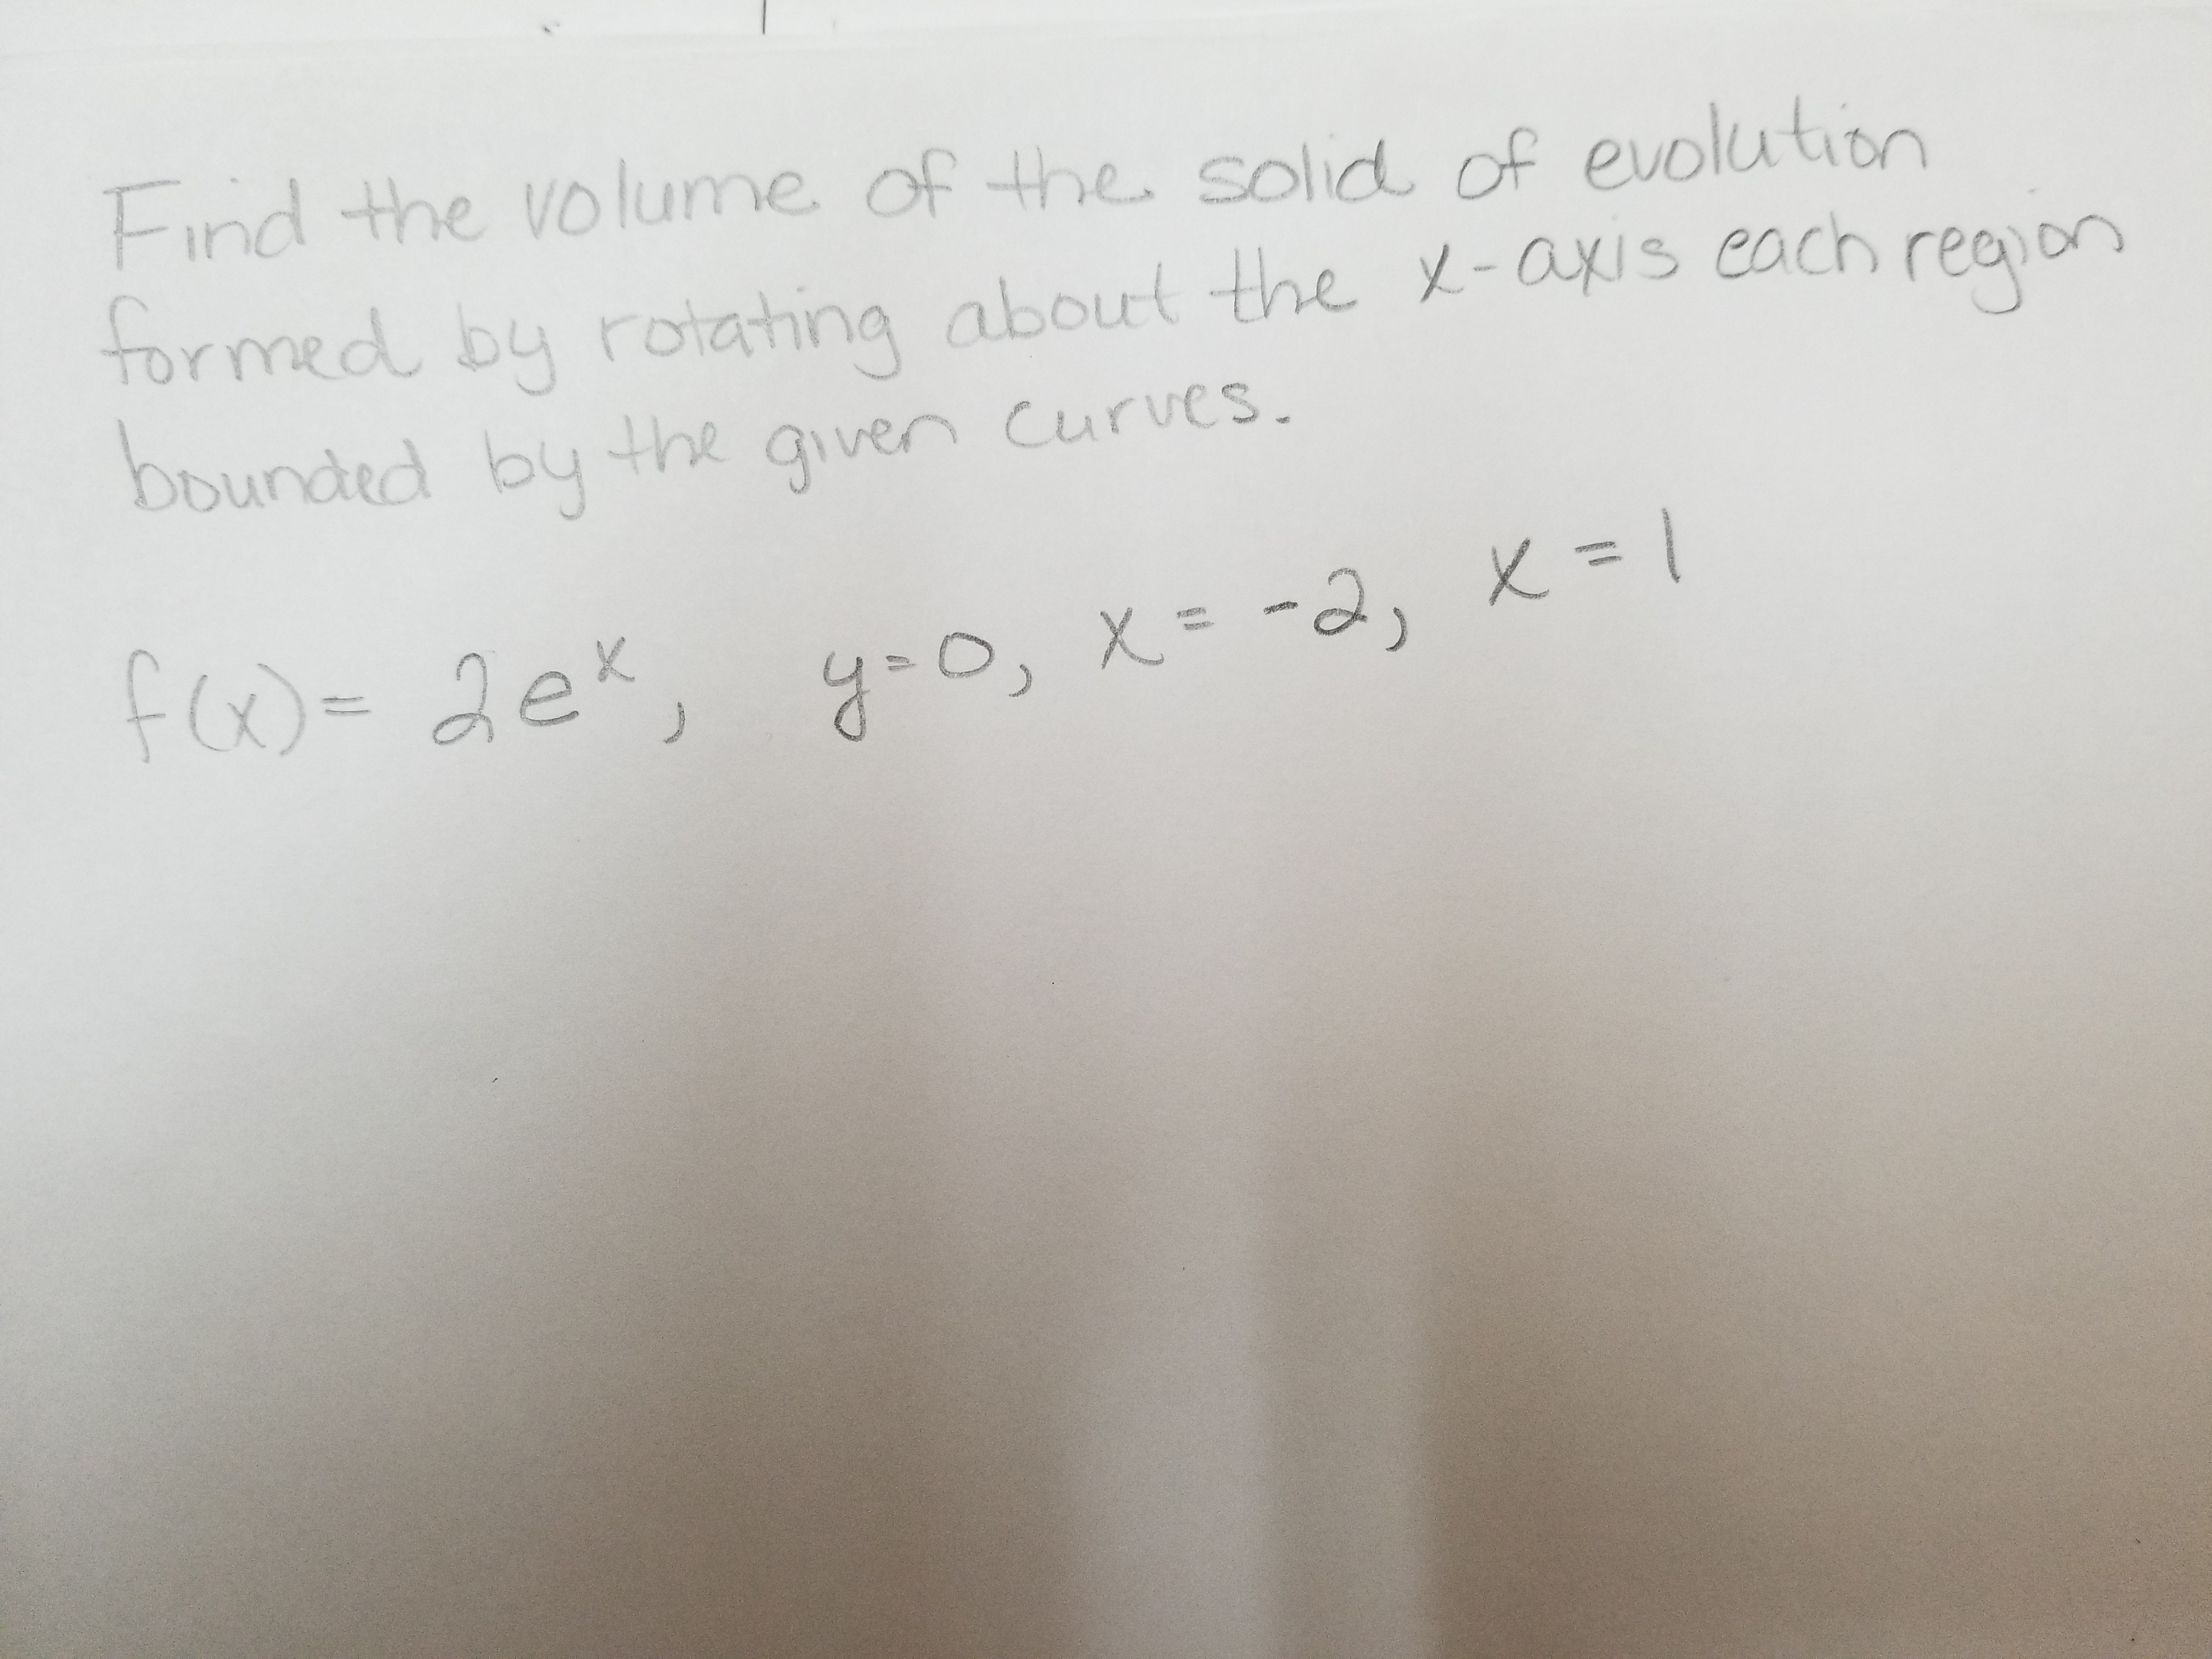 Find the volume of the solid of evolutiton formedl by roiating abourt the y-axis coch rea bunded bu the aven curves.